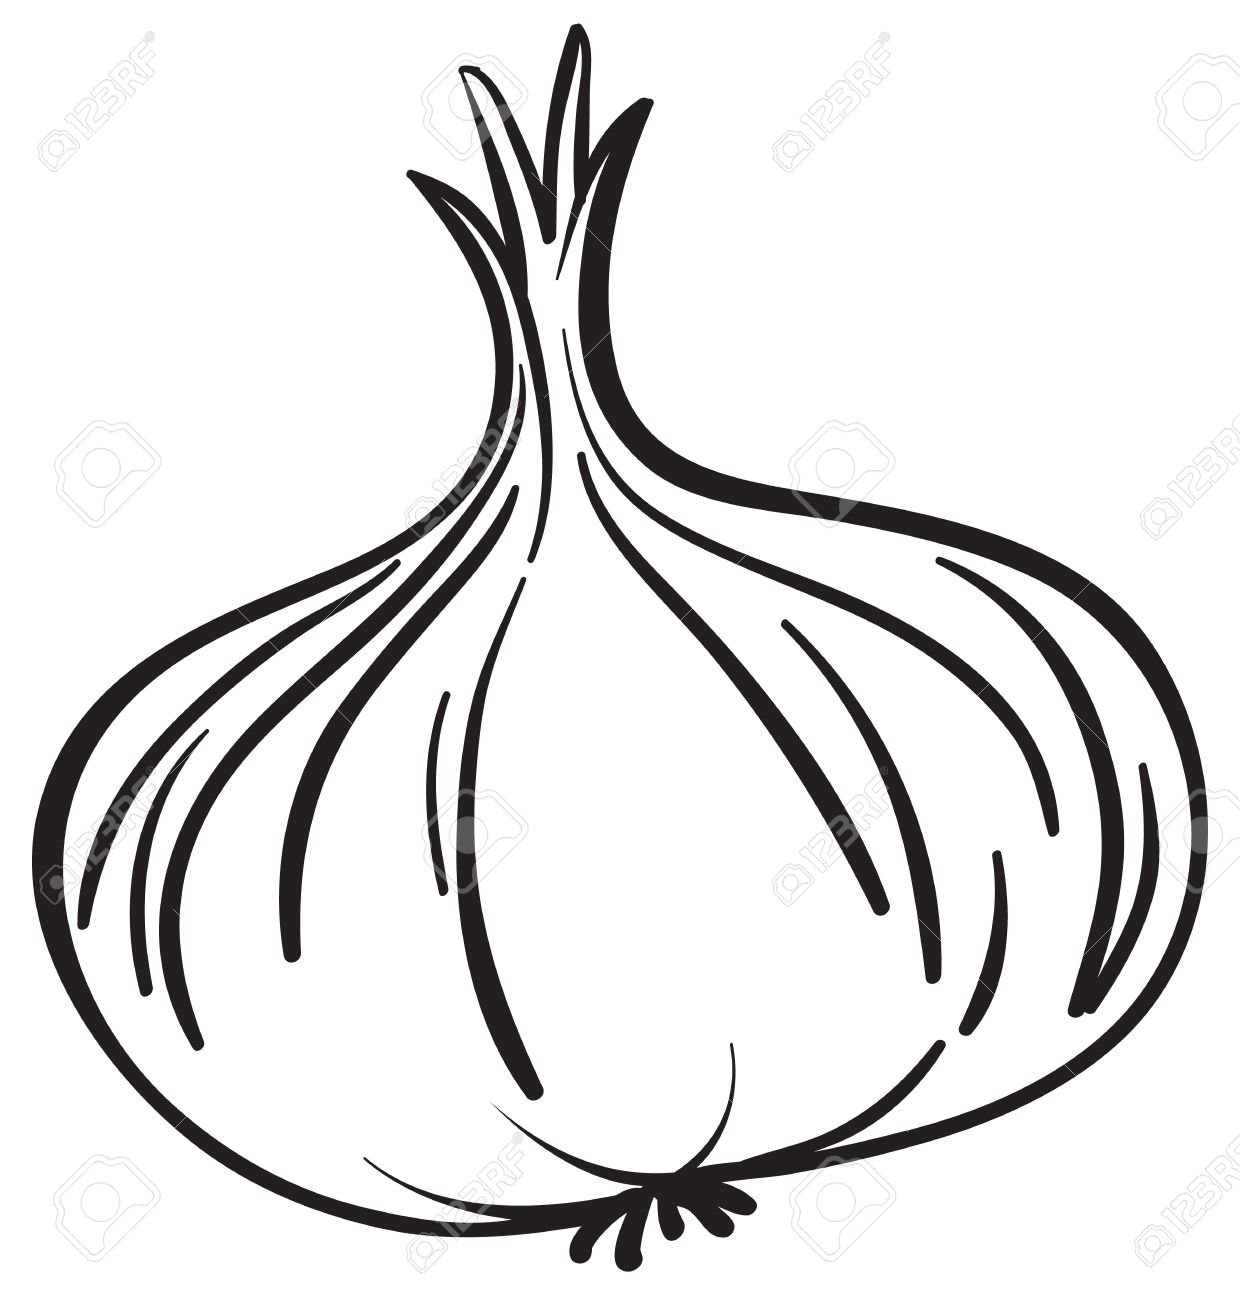 1240x1300 Vegetable Clipart Black And White 8 Nice Clip Art